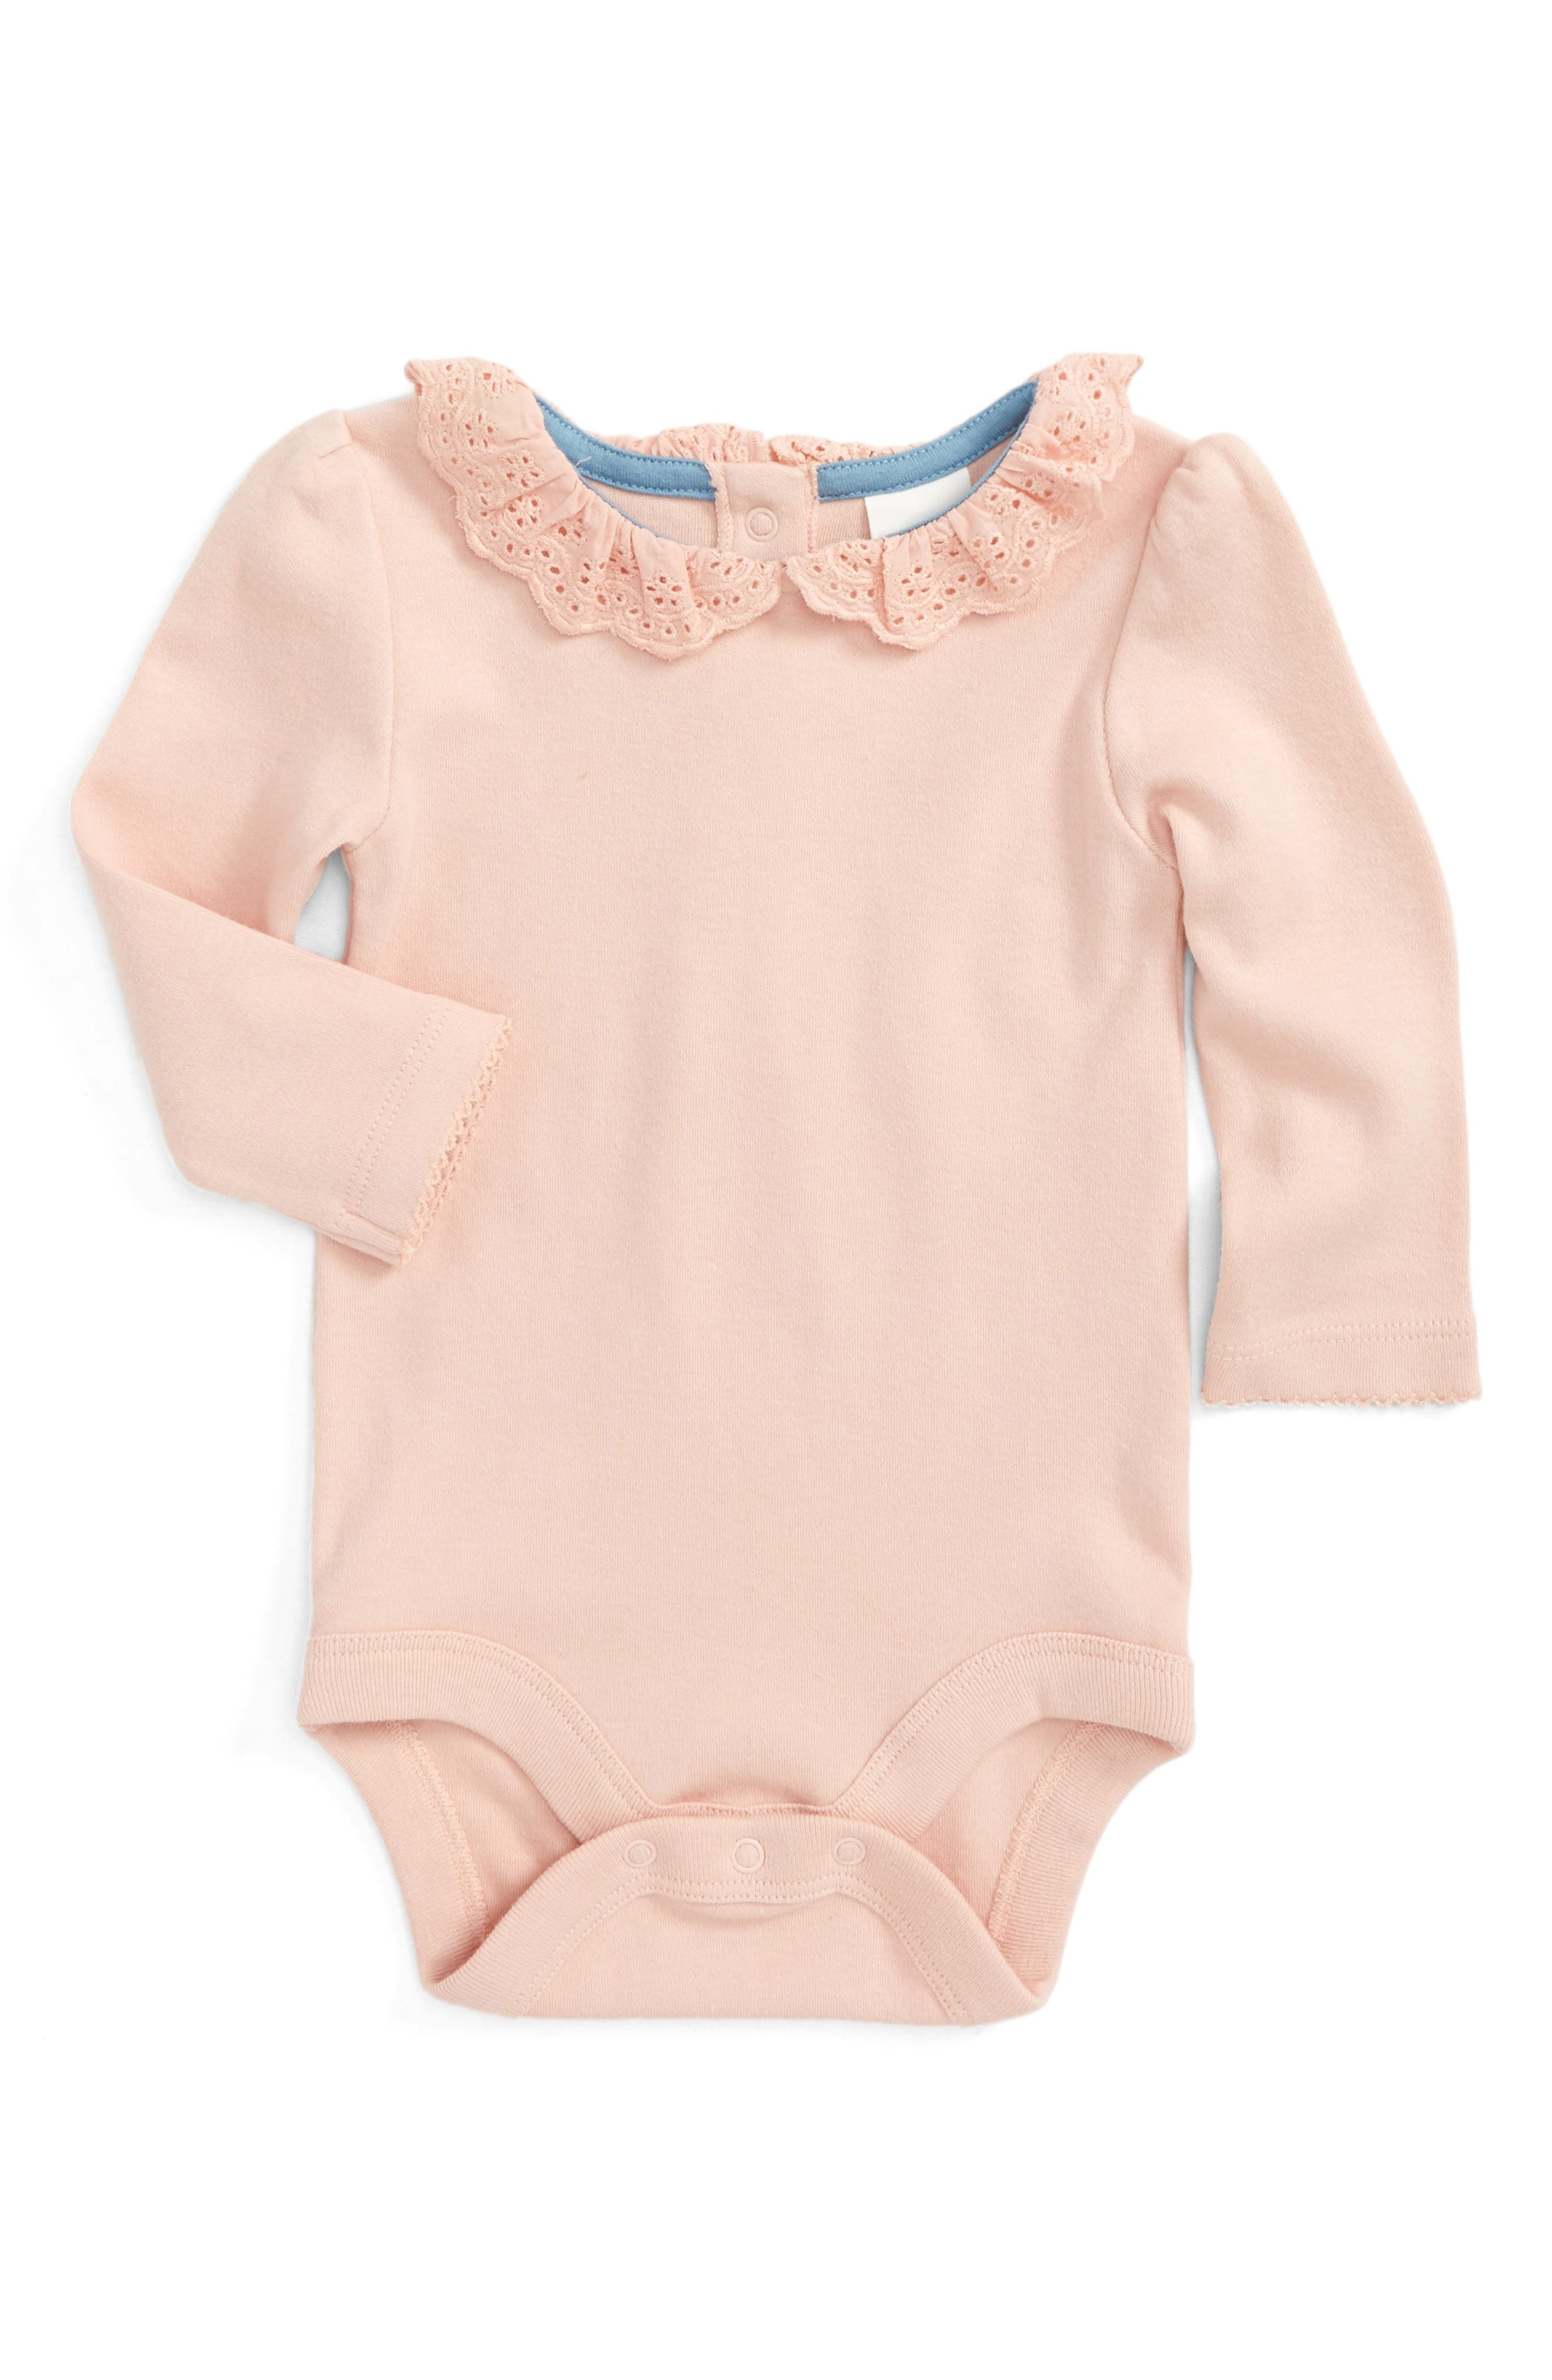 Alternate Image 1 Selected - Mini Boden Pretty Collar Bodysuit (Baby)